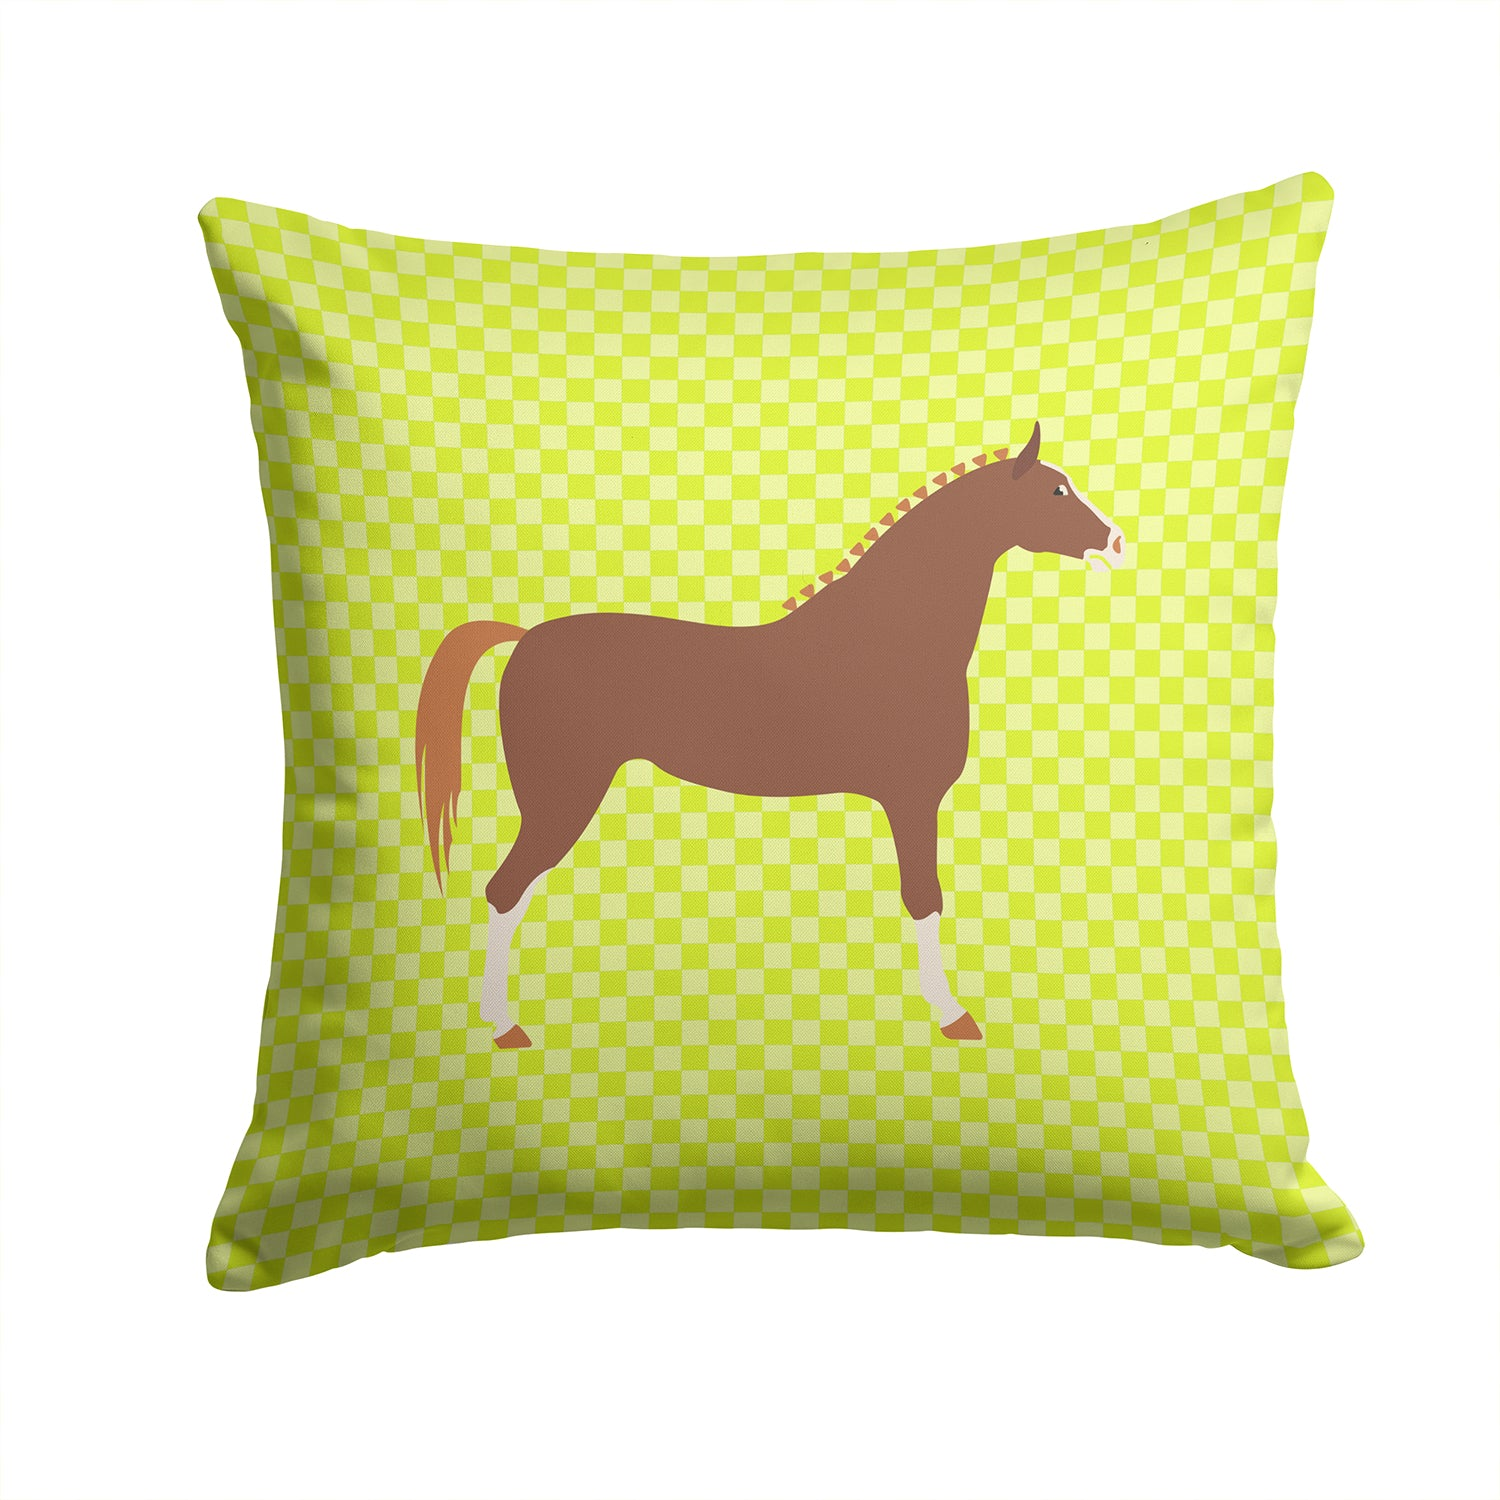 Hannoverian Horse Green Fabric Decorative Pillow BB7735PW1414 by Caroline's Treasures